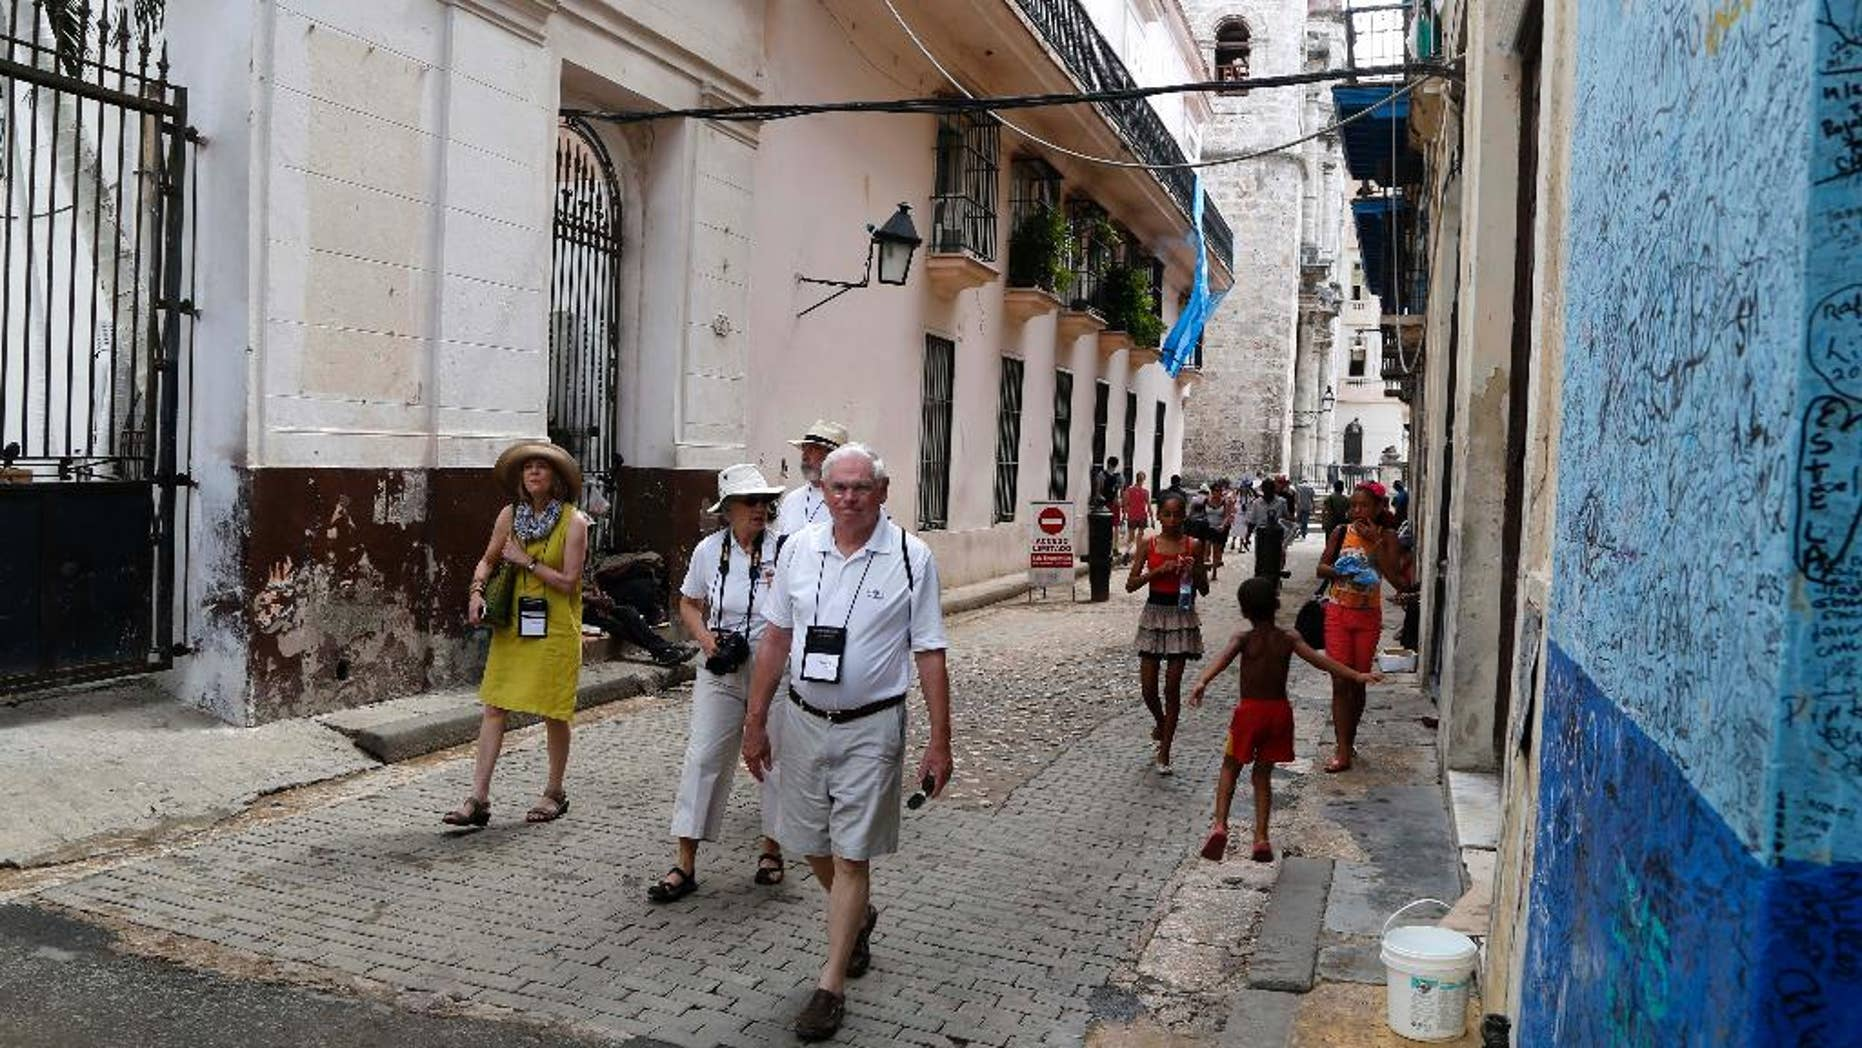 FILE - In this May 24, 2015 file photo, US tourists walks outside the Bodeguita del Medio Bar frequented by the late American novelist Ernest Hemingway in Old Havana, Cuba. Cuba's official news media announced on Thursday, July 7, 2016 the number of American travelers to the island is up 83.9 percent for the first half of the year, compared with the same January-June period in 2015. Prensa Latina reported that there were also significant increases in visitors from nations such as Spain, Italy, Poland and Germany. (AP Photo/Desmond Boylan File)